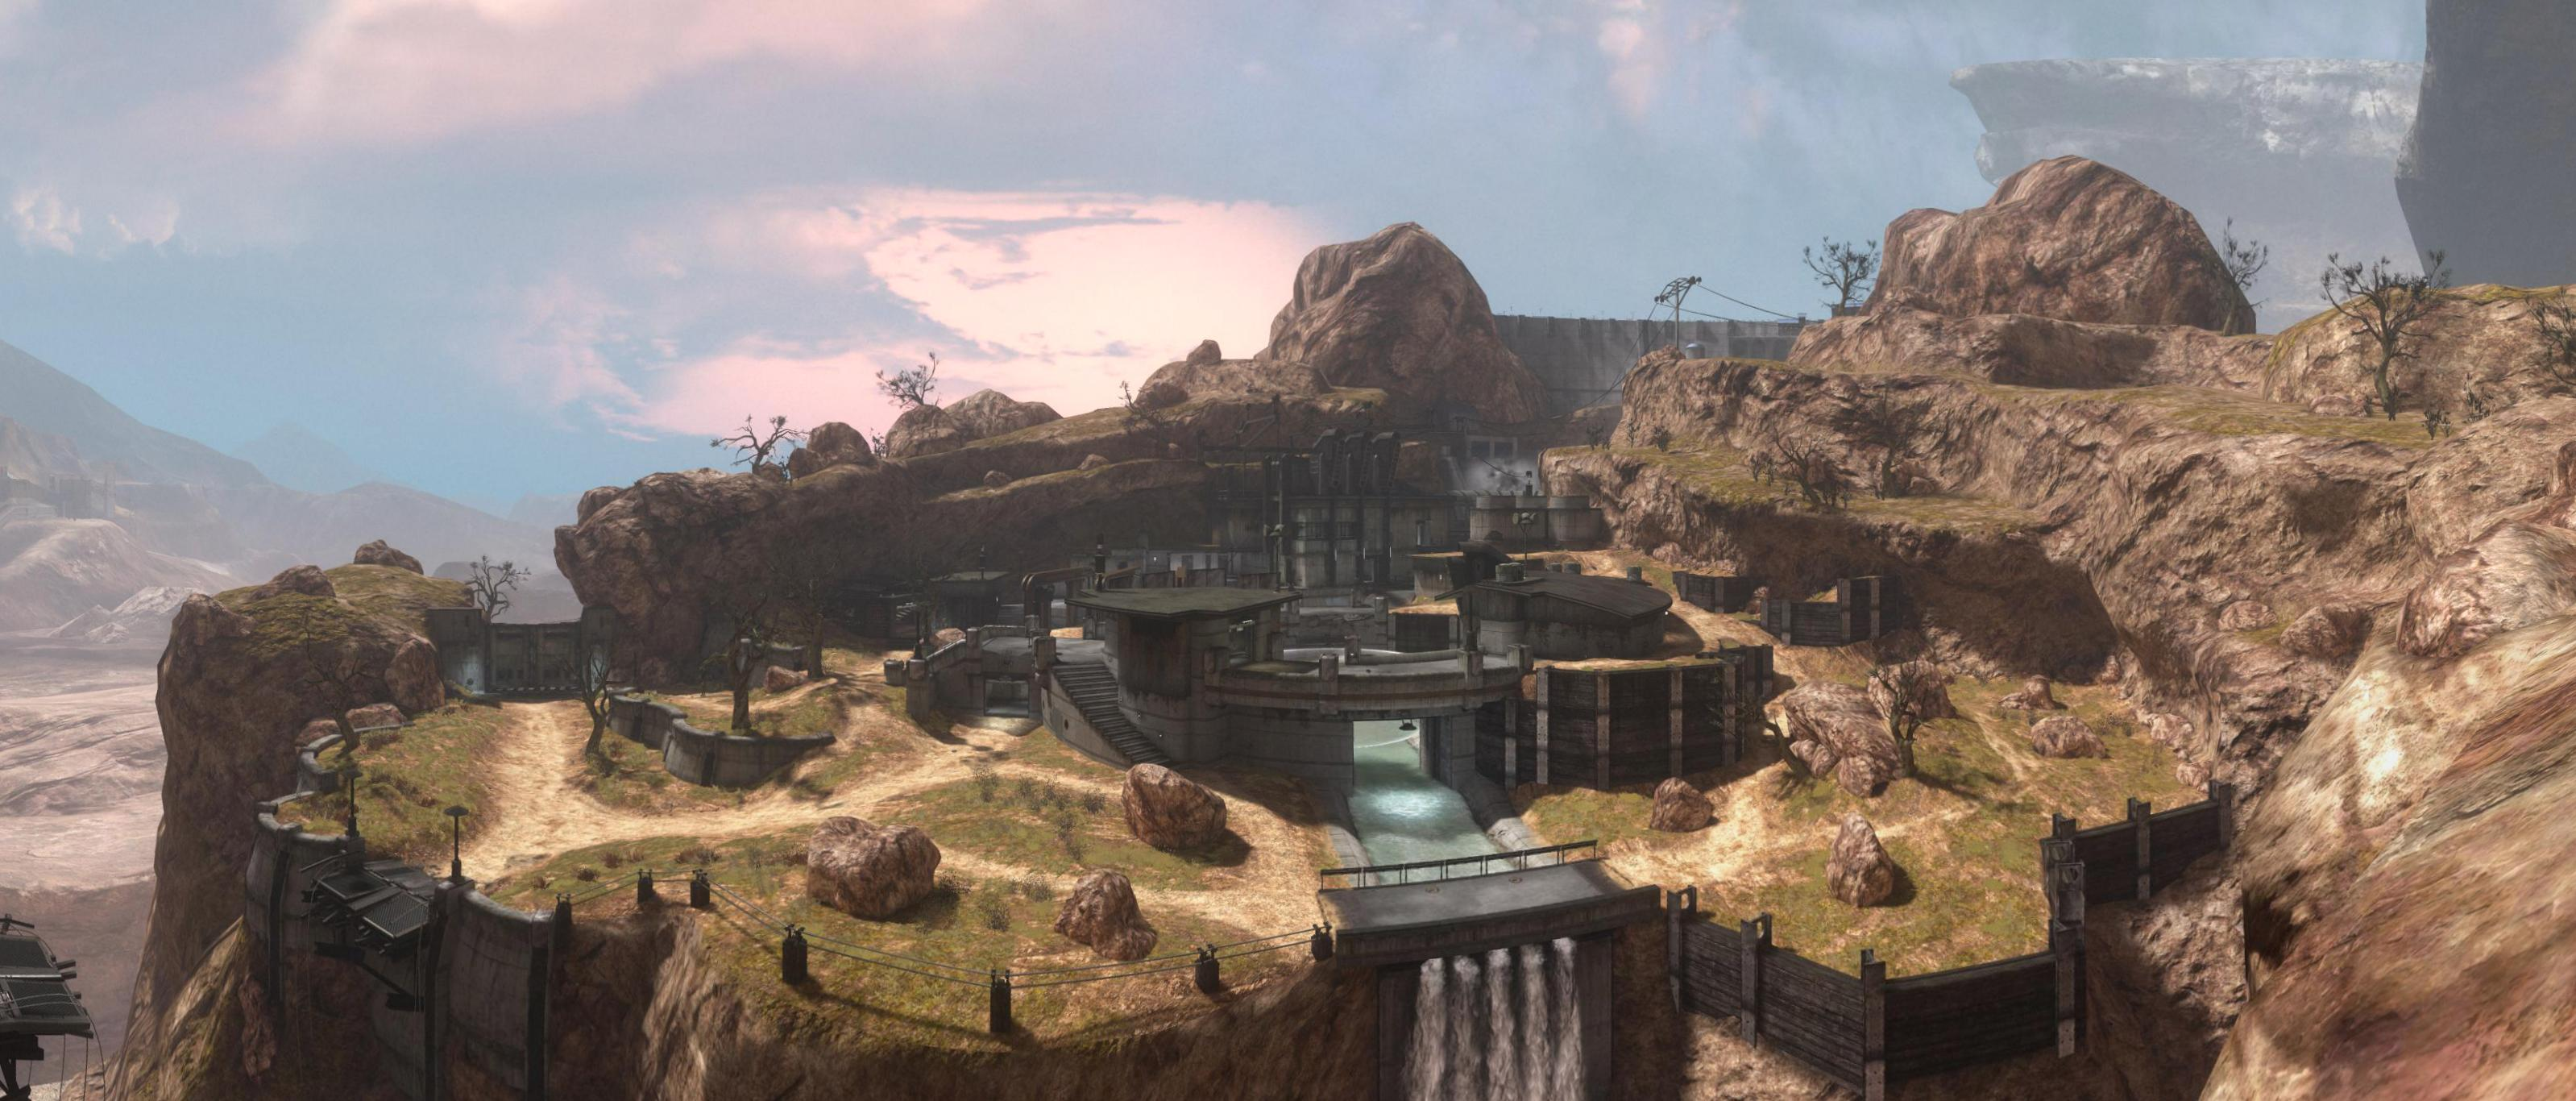 Big panorama on the Halo Reach Beta map Powerhouse.